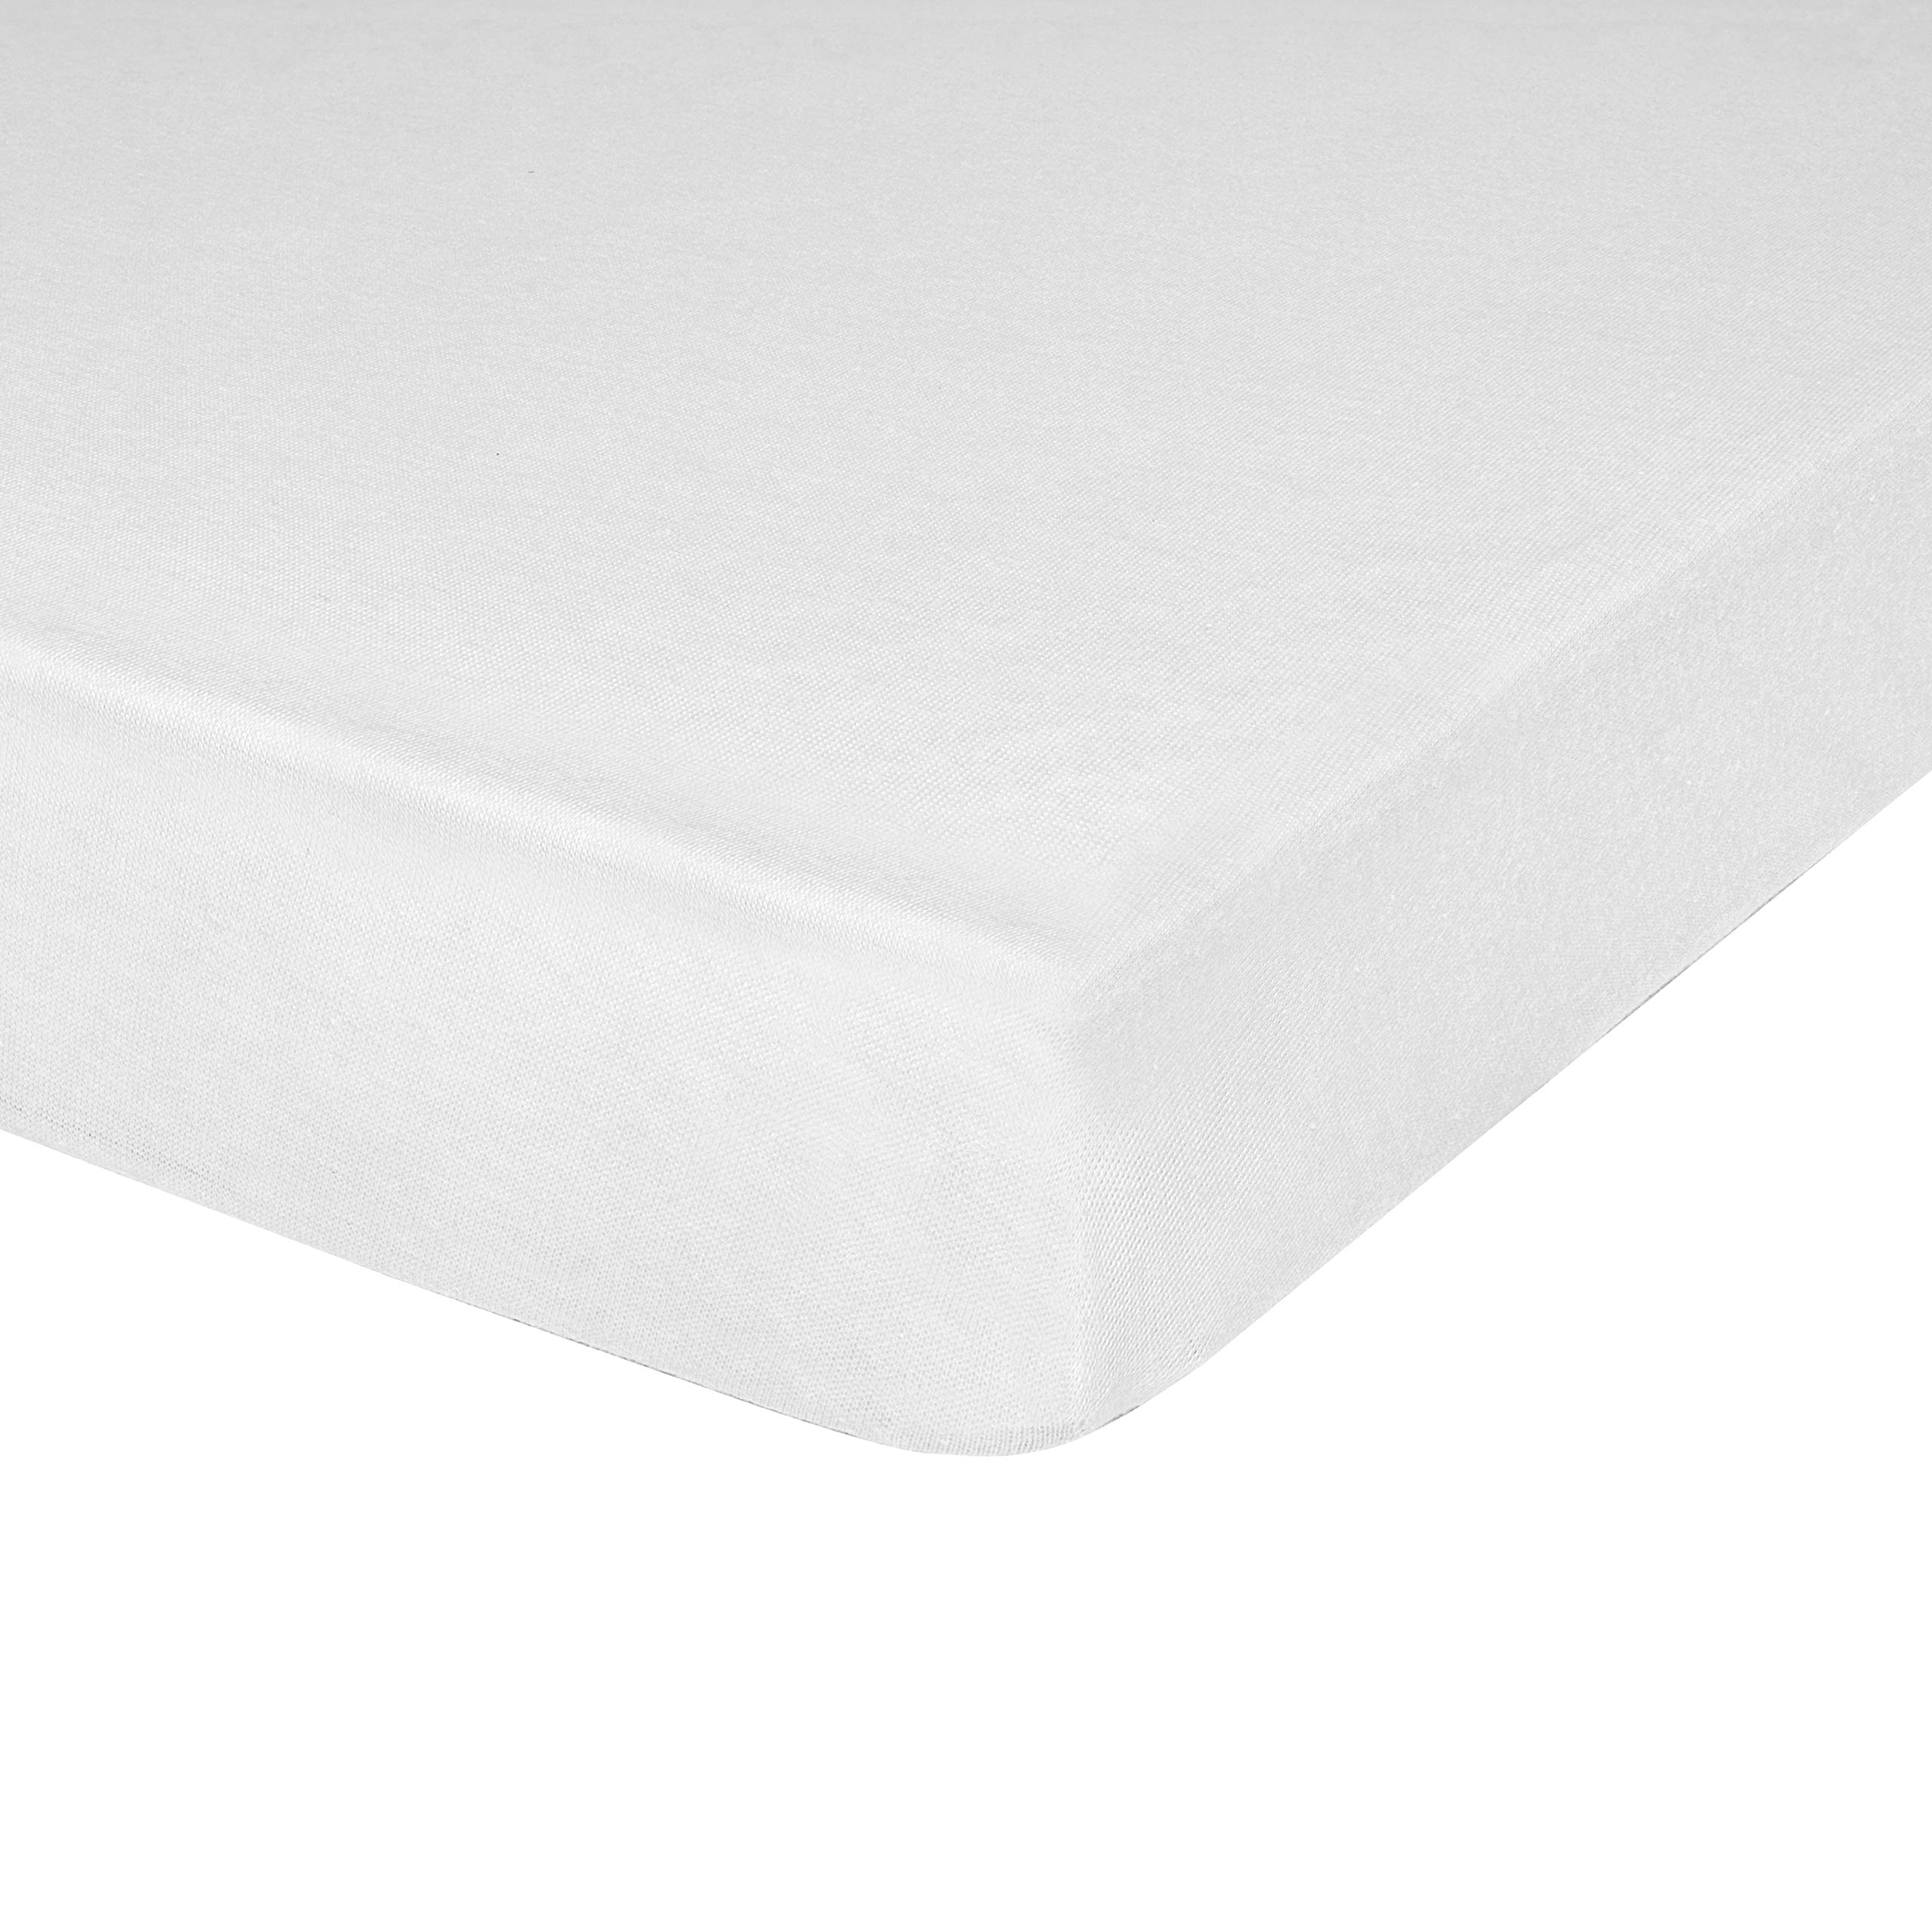 Soft Micro Polyester Cot Size Breathable Comfort Mattress Bed Bug Protector Fits Camp Size Matteress 31X75